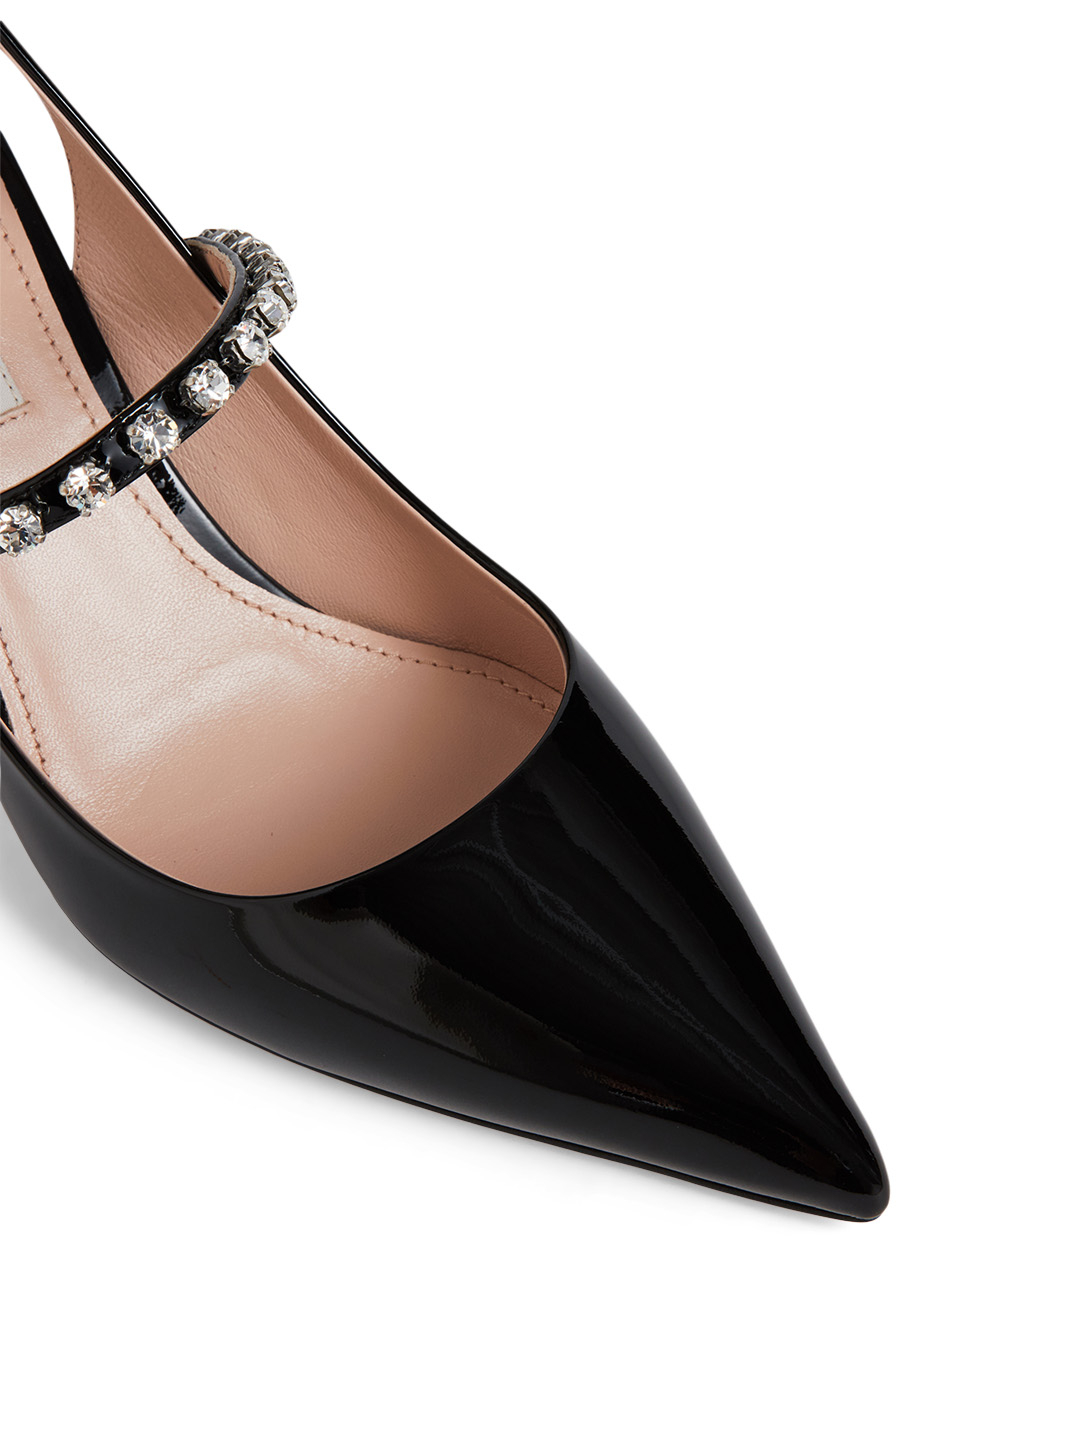 MIU MIU Patent Leather Slingback Pumps With Crystals Womens Black